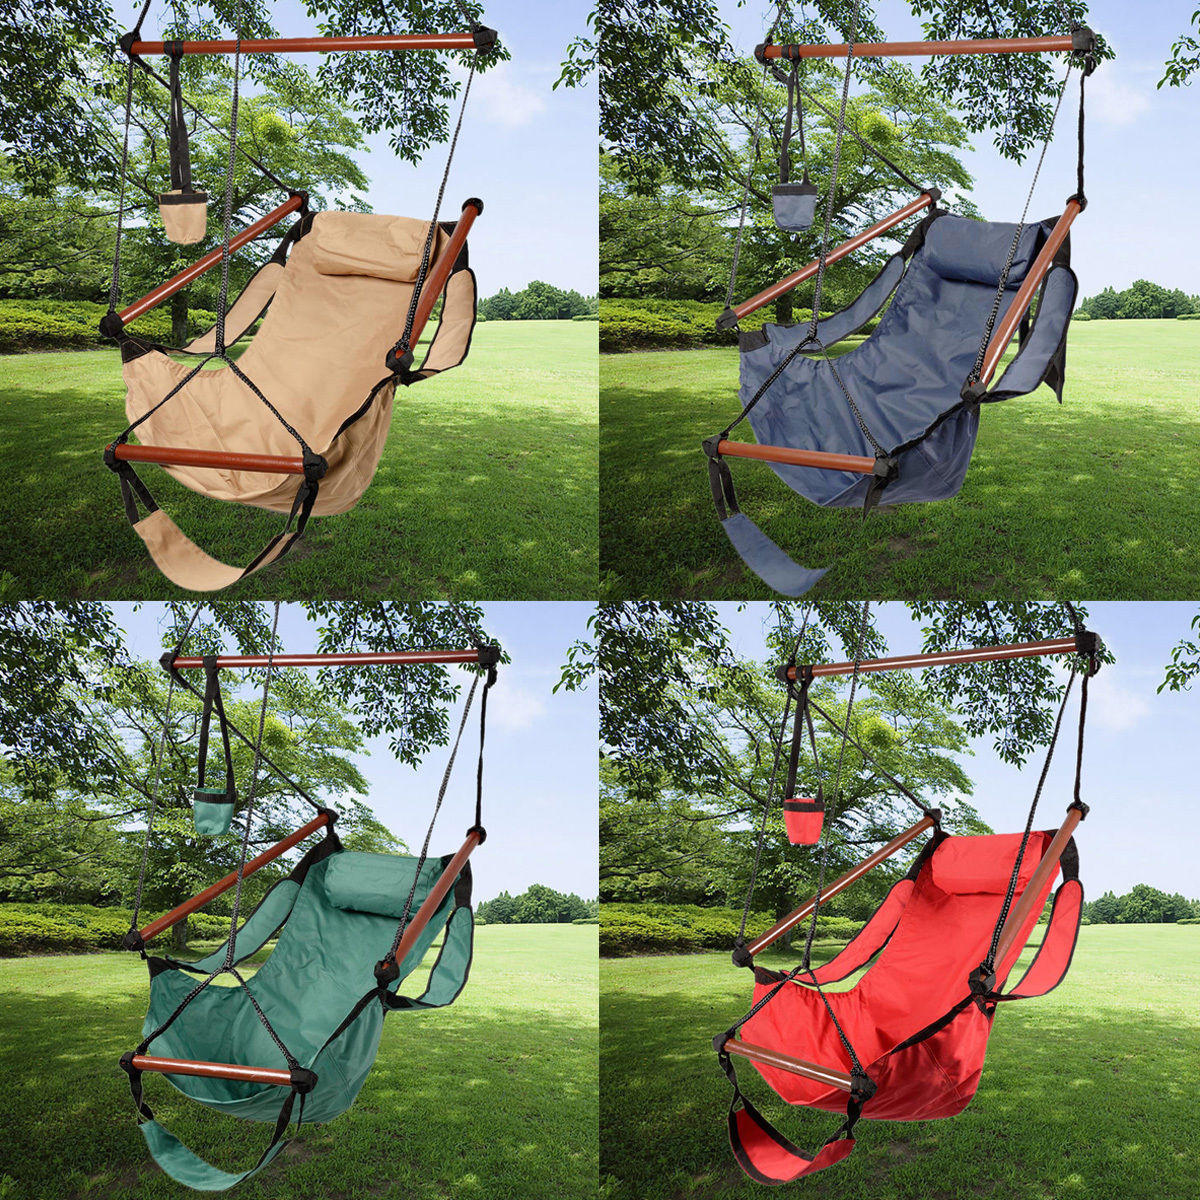 $24.89 + Free Shipping Outdoor Indoor Hammock Hanging Chair Air Deluxe Sky Swing Chair Solid Wood 250lb